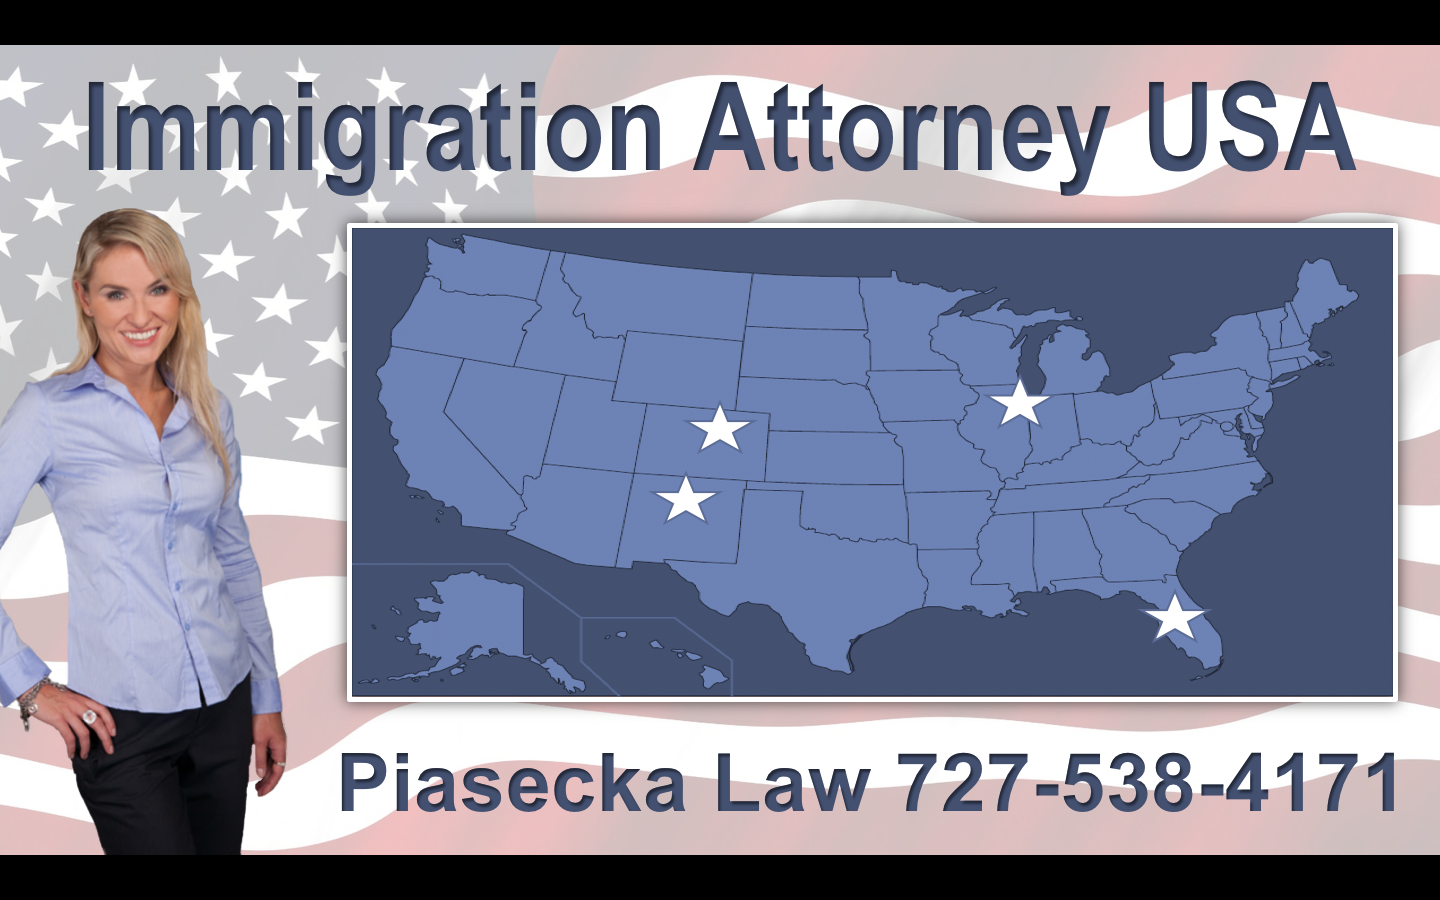 Immigration-Attorney-USA-Piasecka-Law